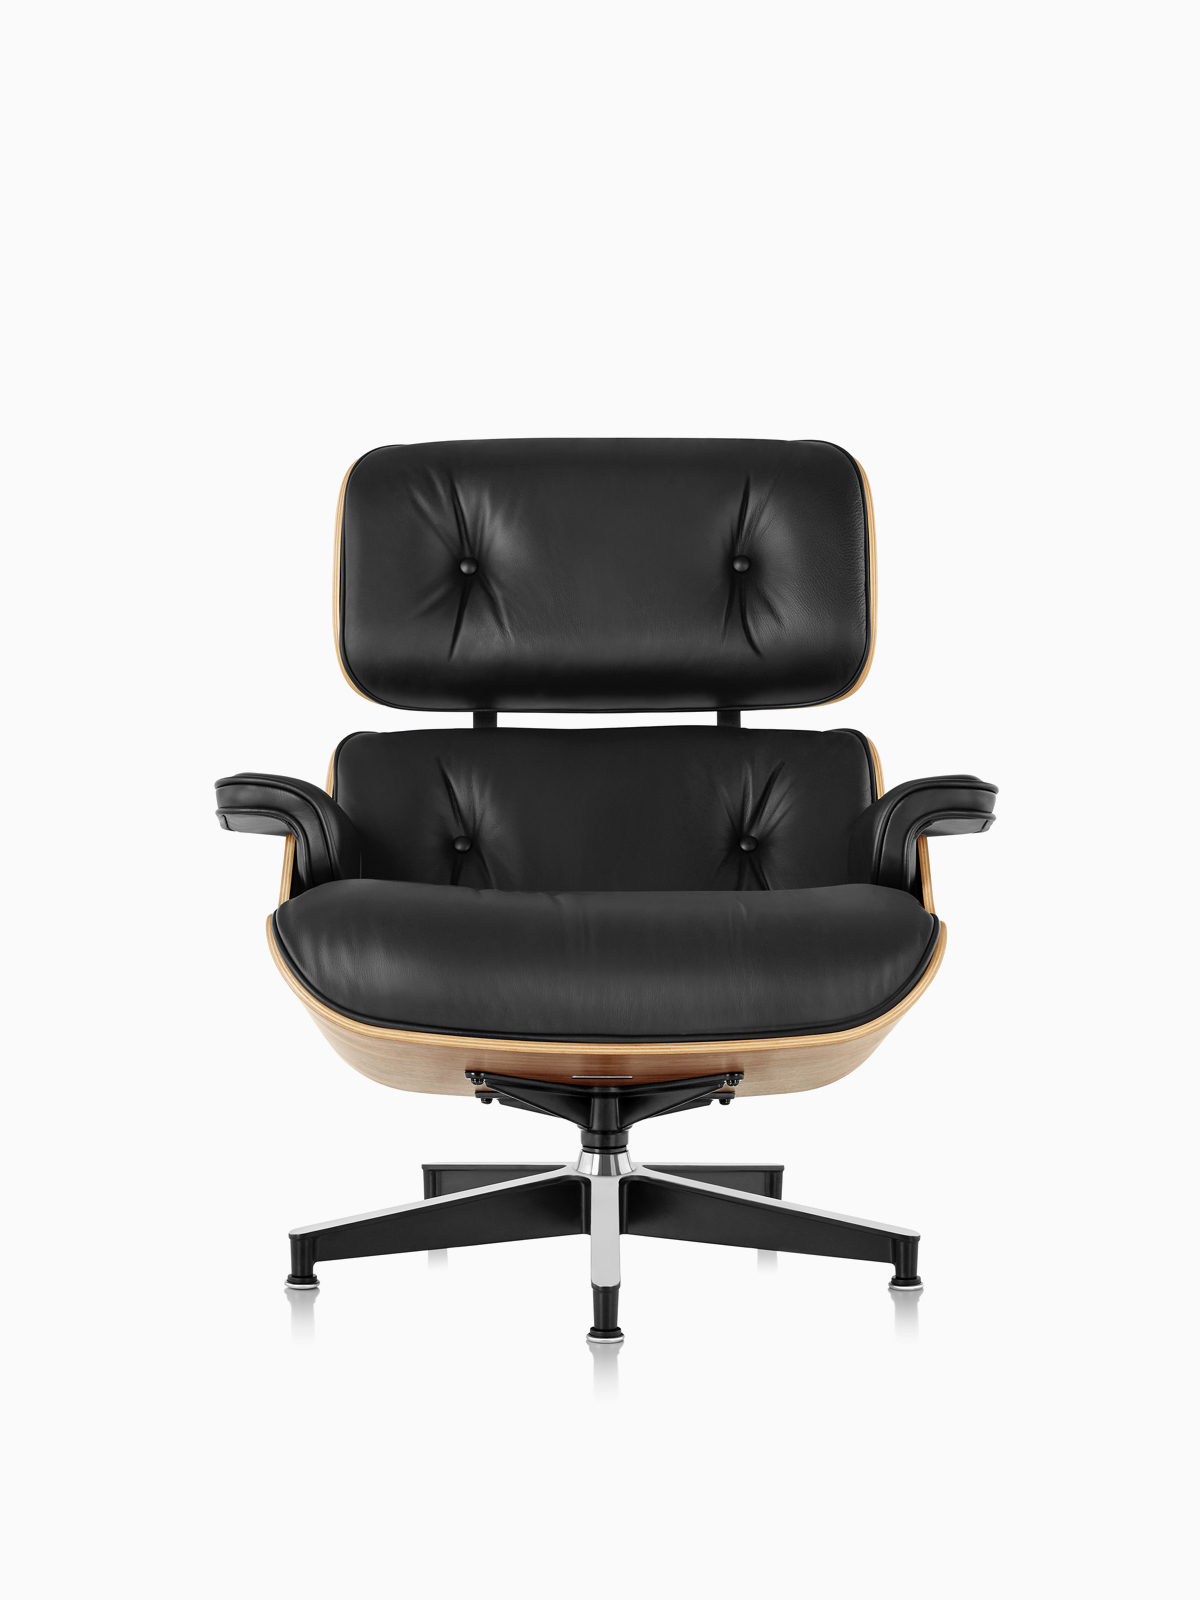 Eames Chair Bim Nelson Basic Cabinet Series Residence Living Application